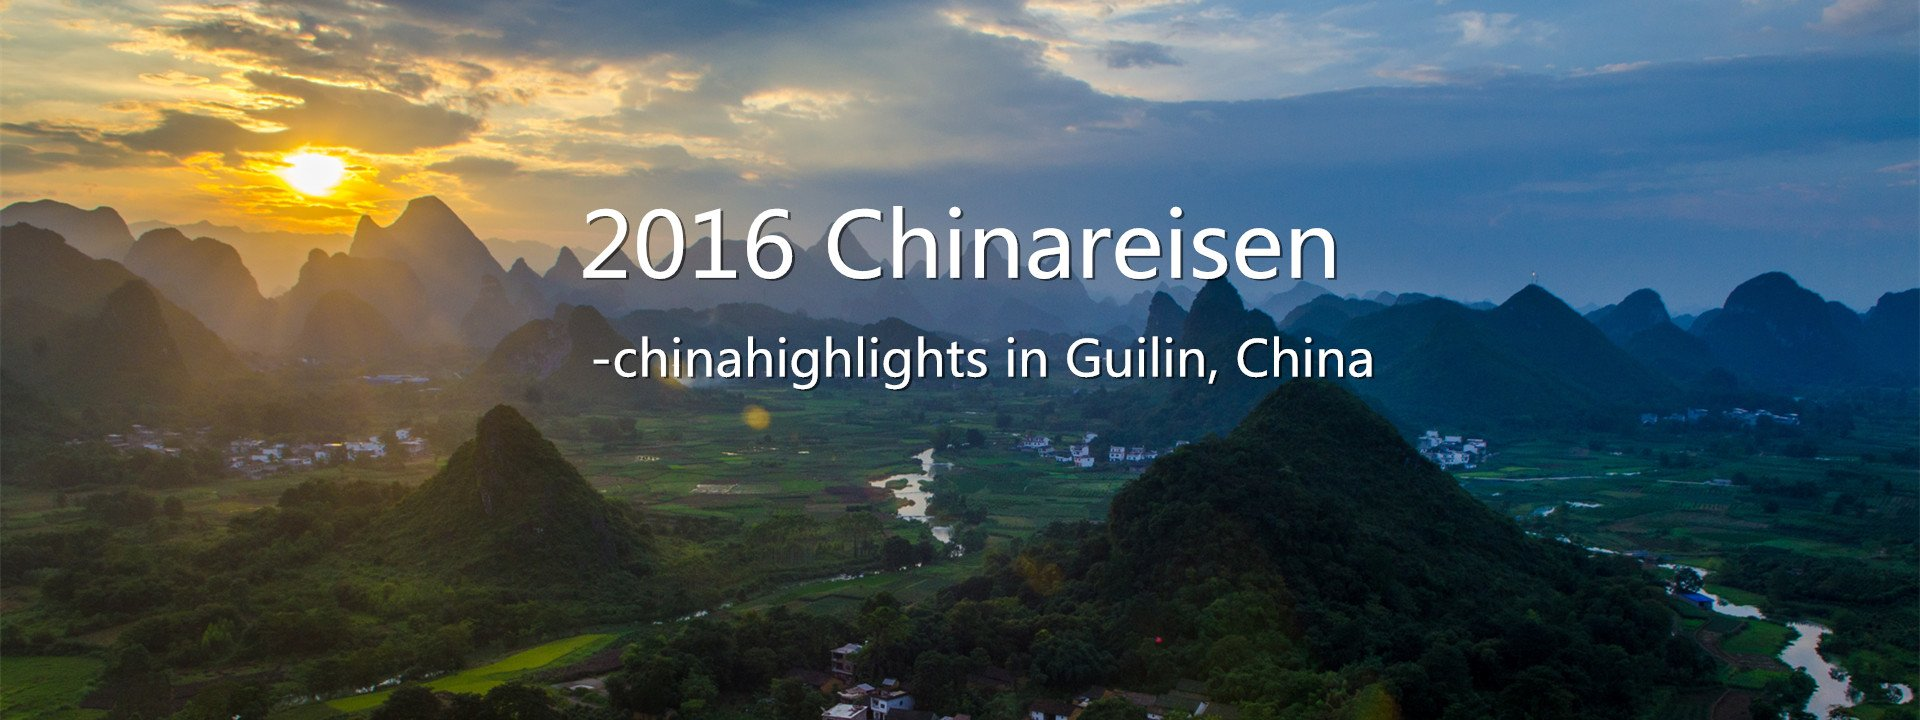 chinareisen-Guilin